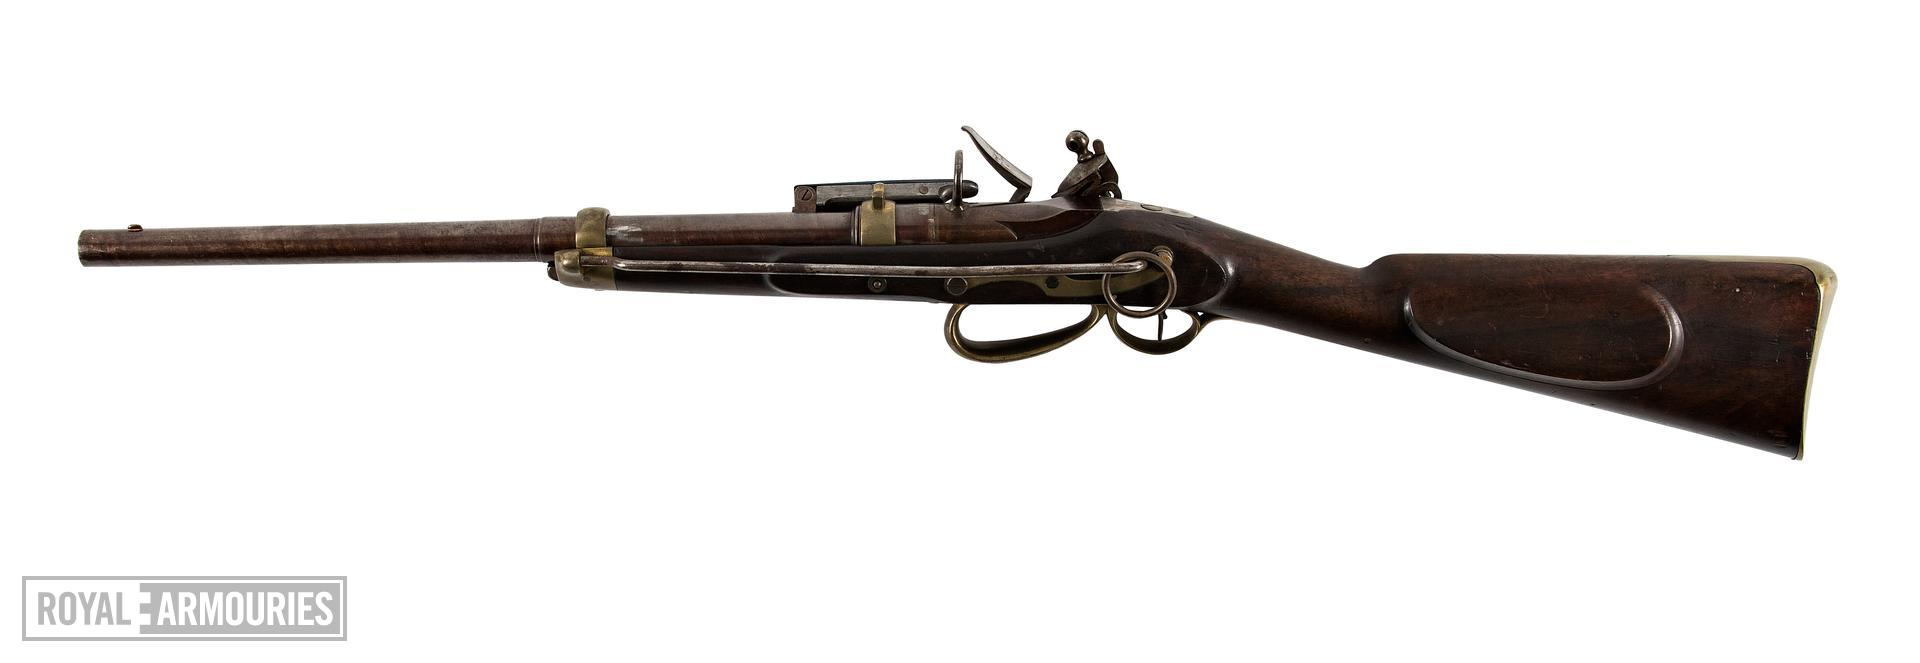 Flintlock breech-loading carbine - Sartoris Mk. III Carbine It was originally suggested that this carbine was from about 1810, however these carbines were not produced until 1817.